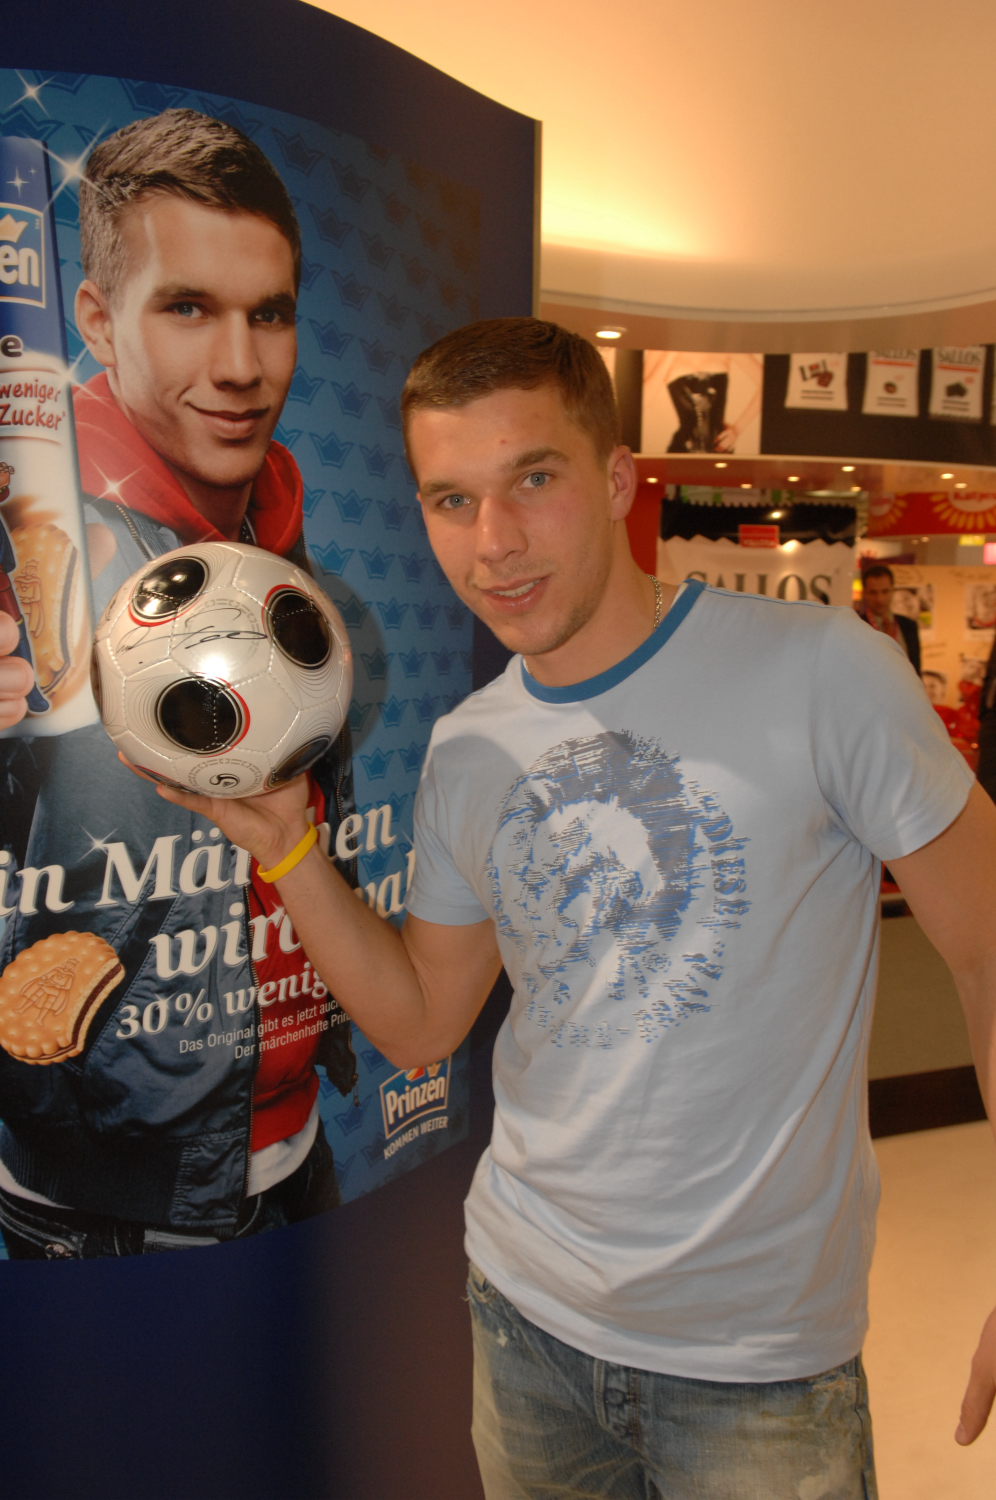 http://bayernmkd.files.wordpress.com/2008/06/poldi_12.jpg